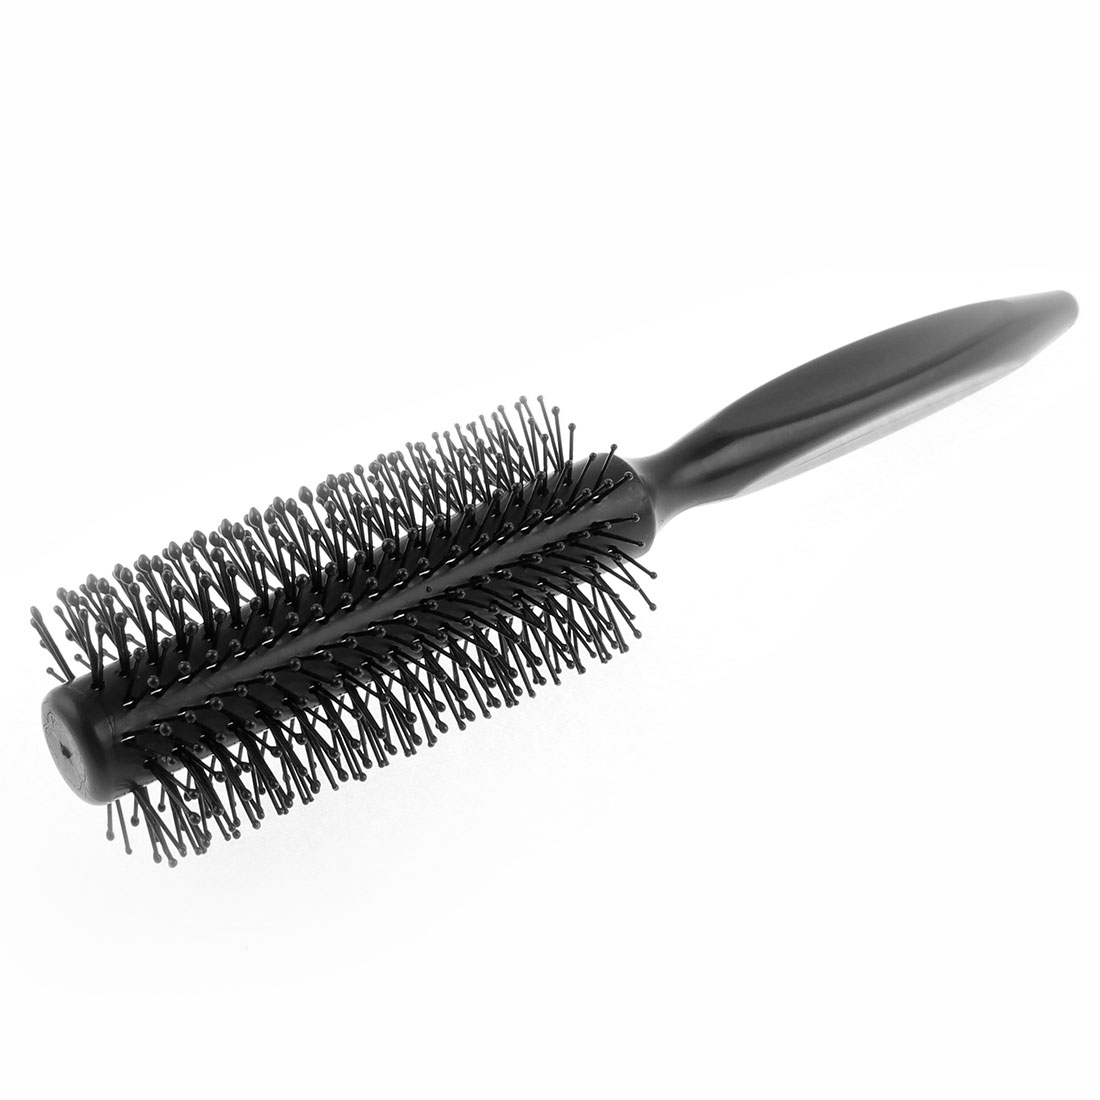 Lady Plastic Triangle Handle Radial Curly Hair Roll Brush Black 21cm Long